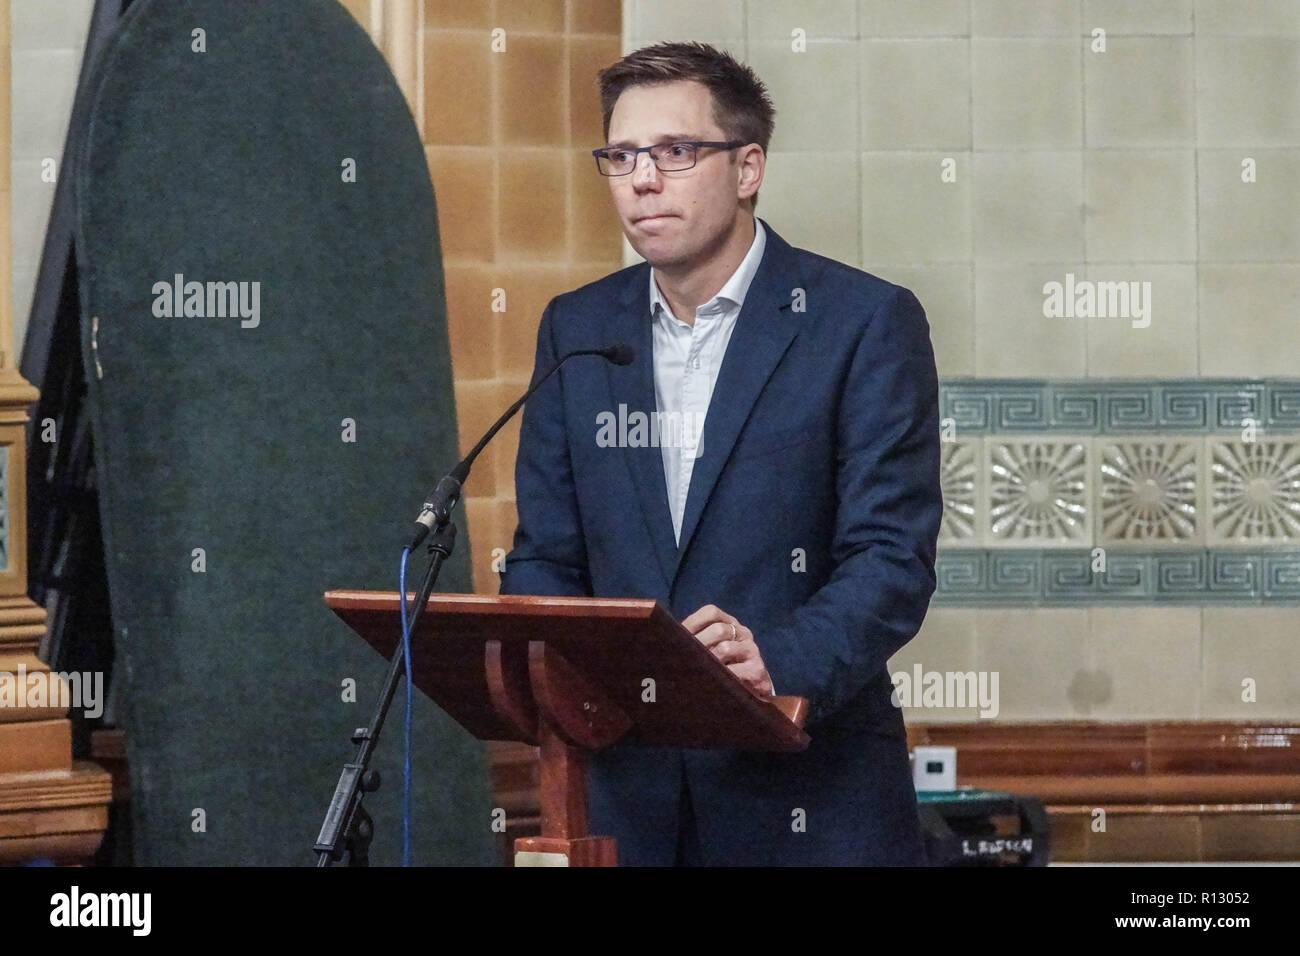 London, UK. 08 November 2018. London, England. Rob Blackie at Lib Dems hold GLA 2020 hustings in the David Lloyd George Room at the National Liberal Club. Reetendra Nath Banerji, Rob Blackie, Caroline Pidgeon, Charley Hasted, Irina Von Wiese, Chris Maines, Hina Bokhari and Joyce Onstad all addressed Liberal Democrat Party members with an view to selection as candidates for the Greater London Assembly election of 2020. © Peter Hogan/Alamy Live News - Stock Image